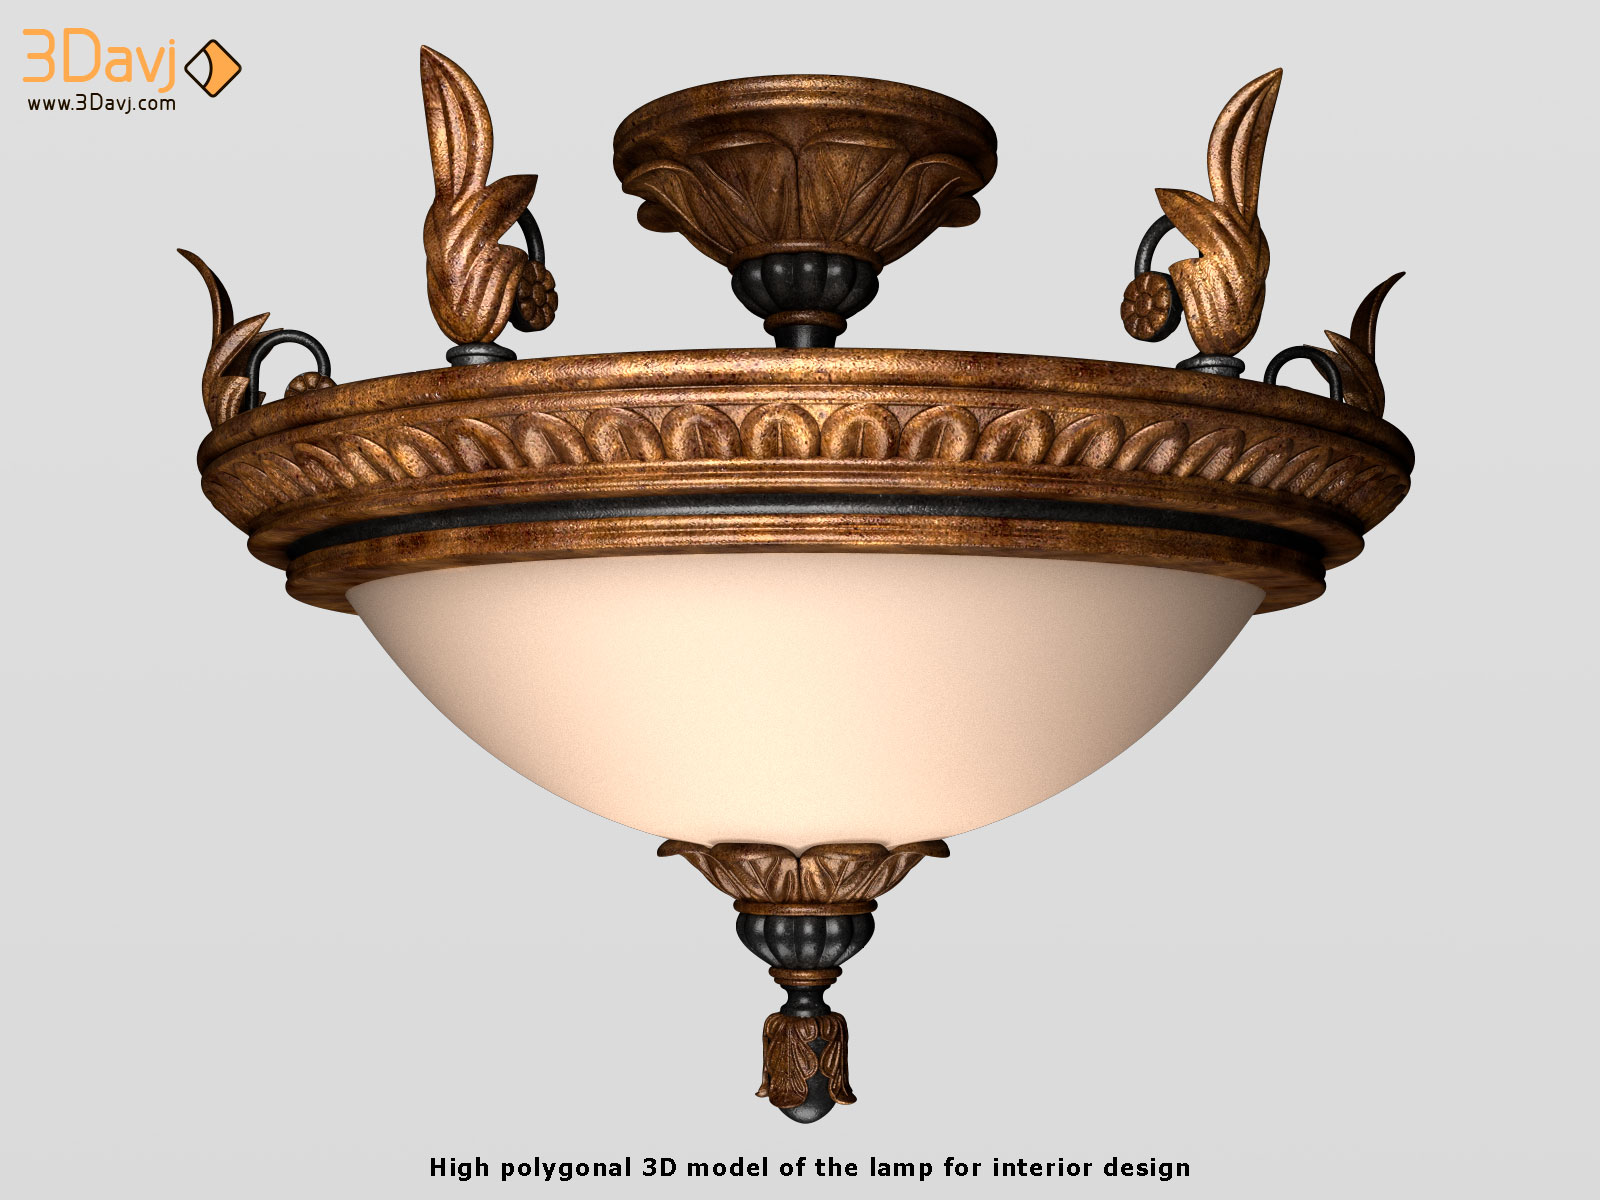 3D models of the lamps